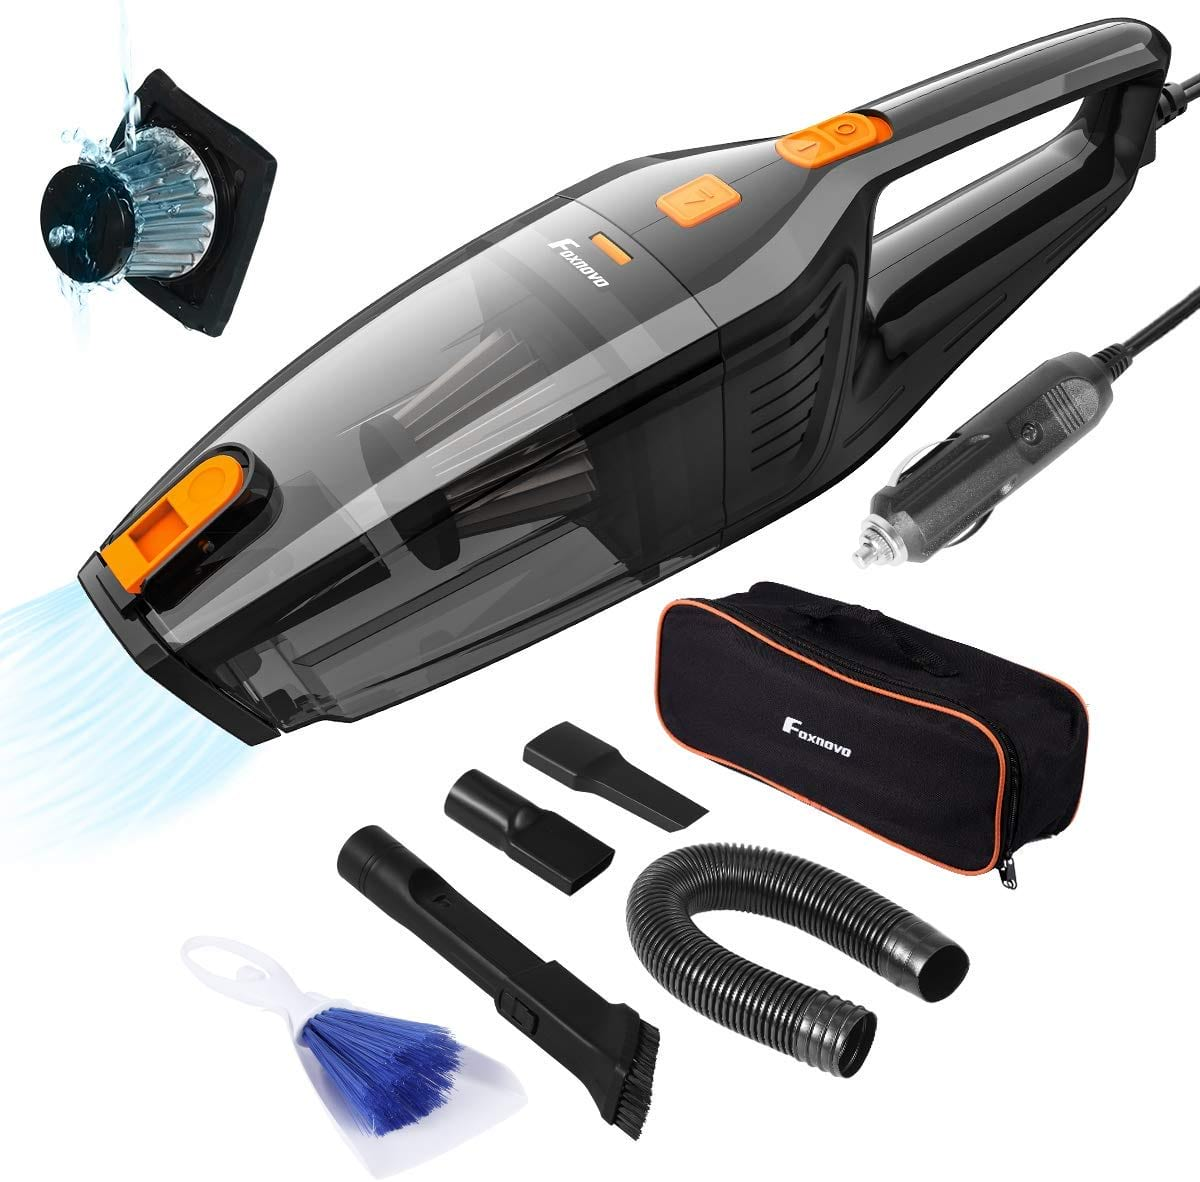 Foxnovo Portable Car Vacuum